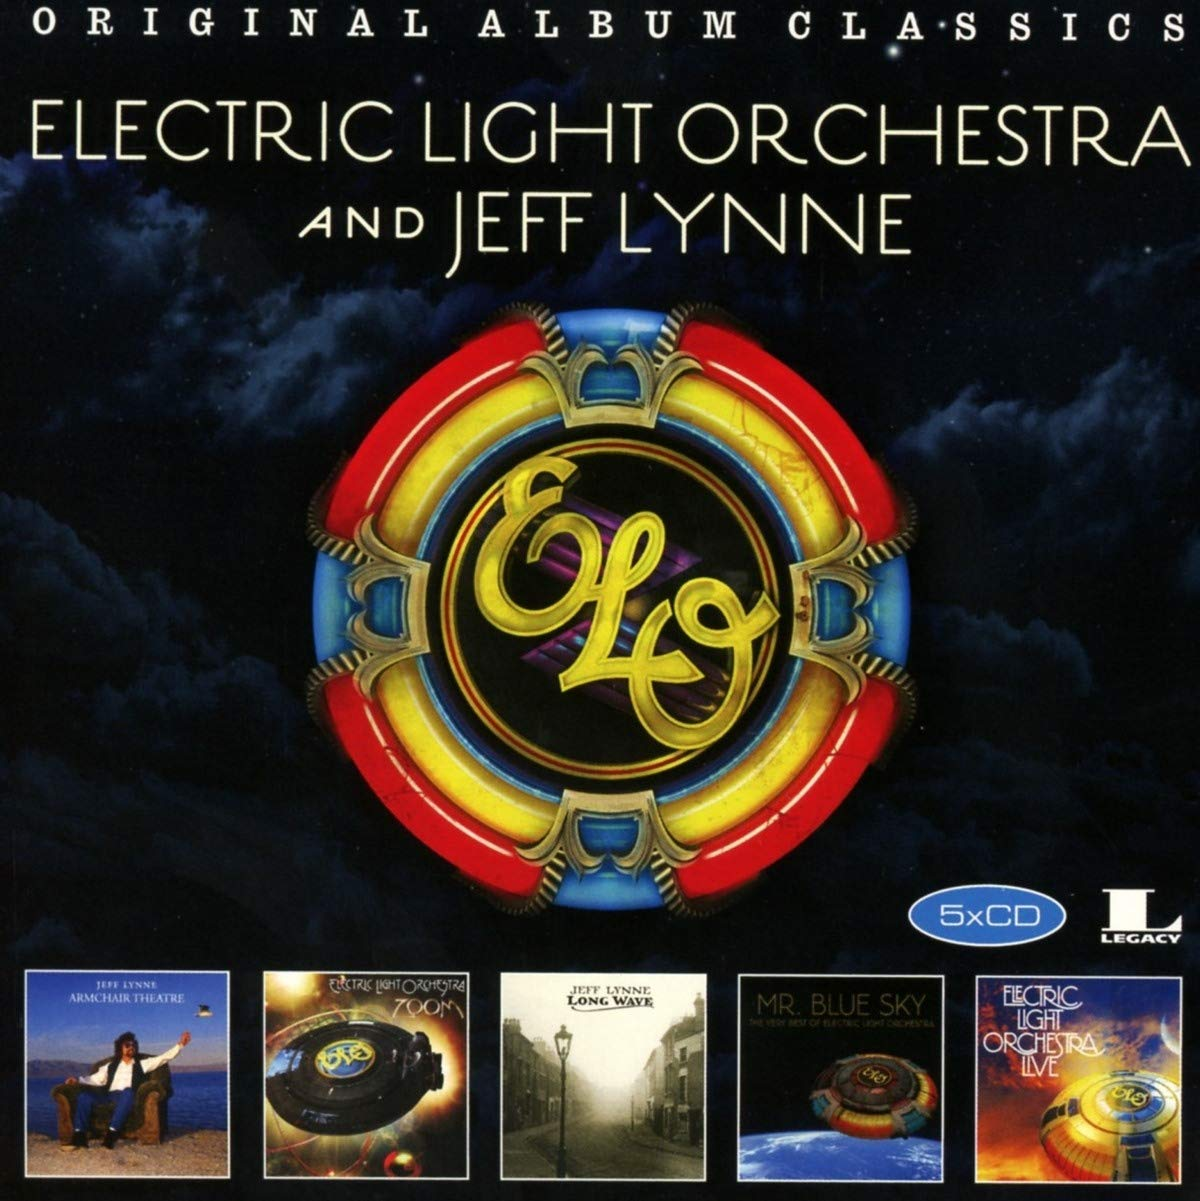 Download Electric Light Orchestra & Jeff Lynne - Original